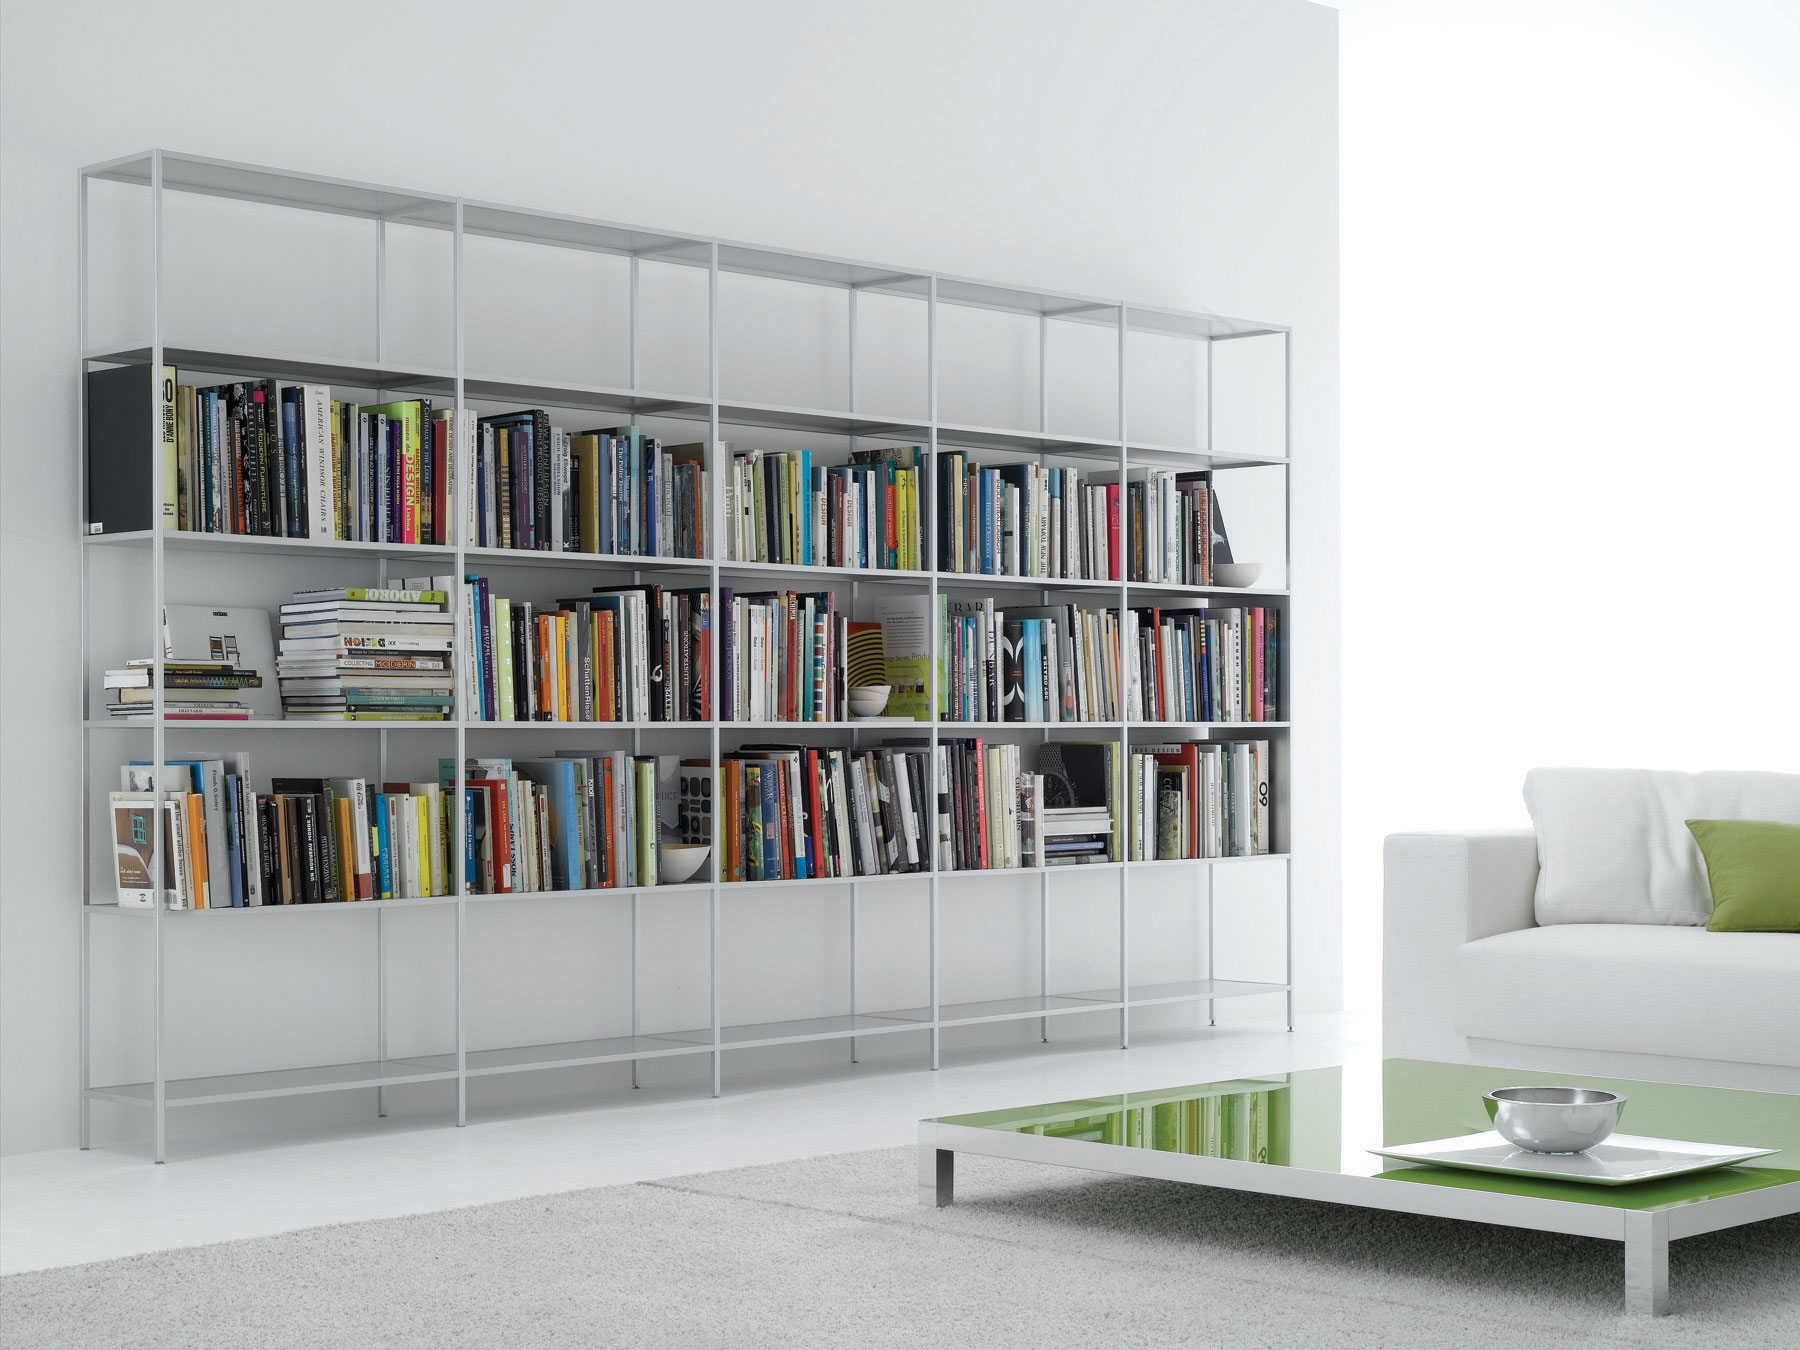 125 Best Images About Shelving System On Pinterest With Book Shelving Systems (View 2 of 15)